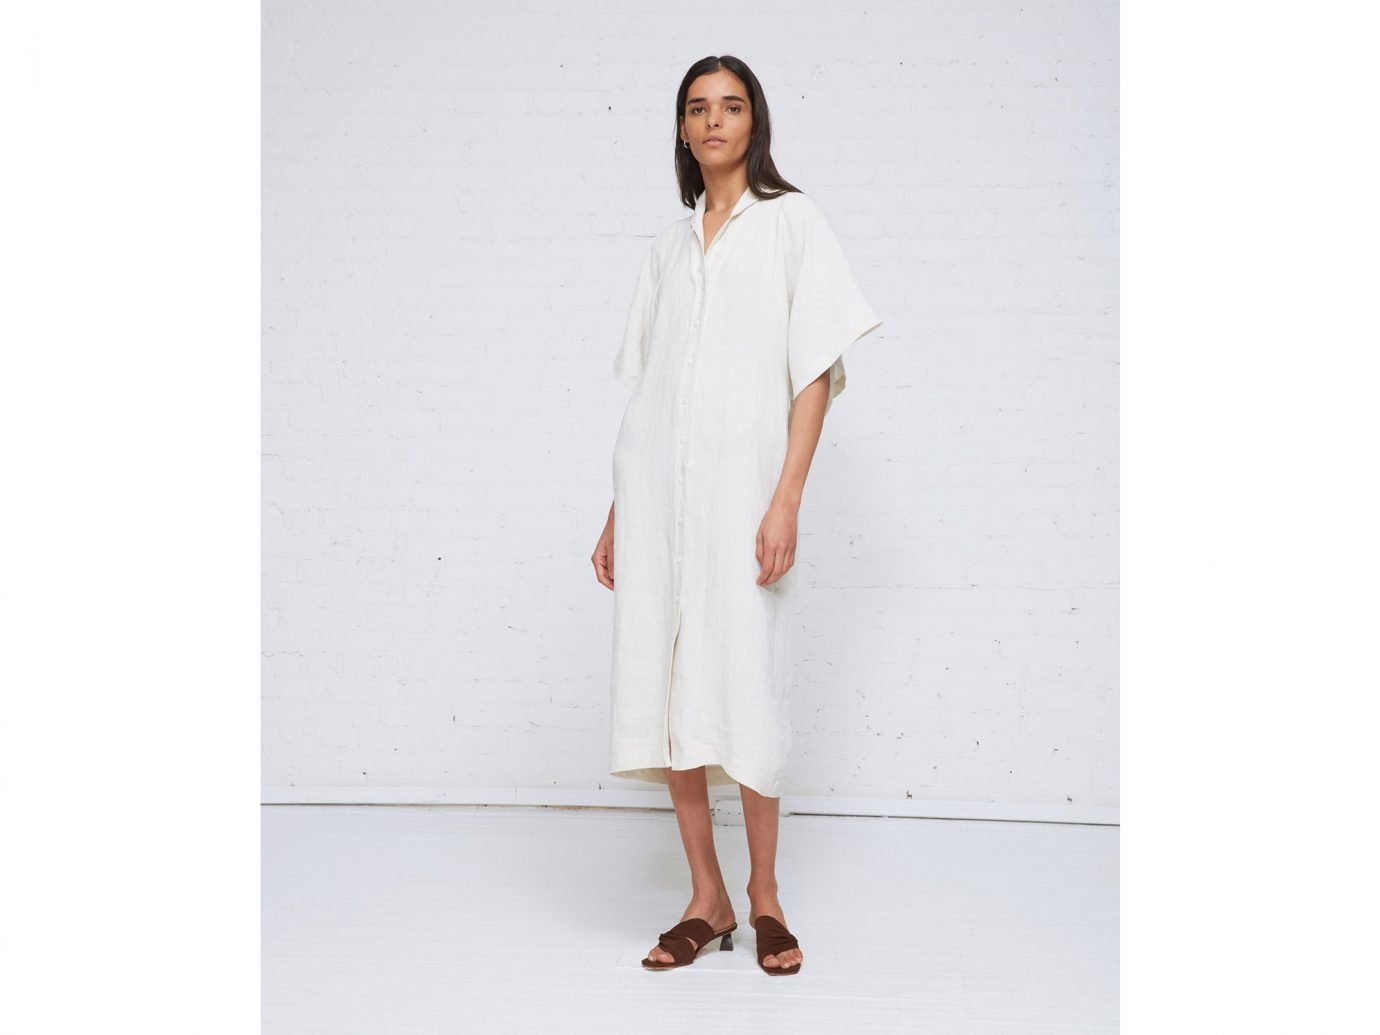 ILANA KOHN Sheldon Dress